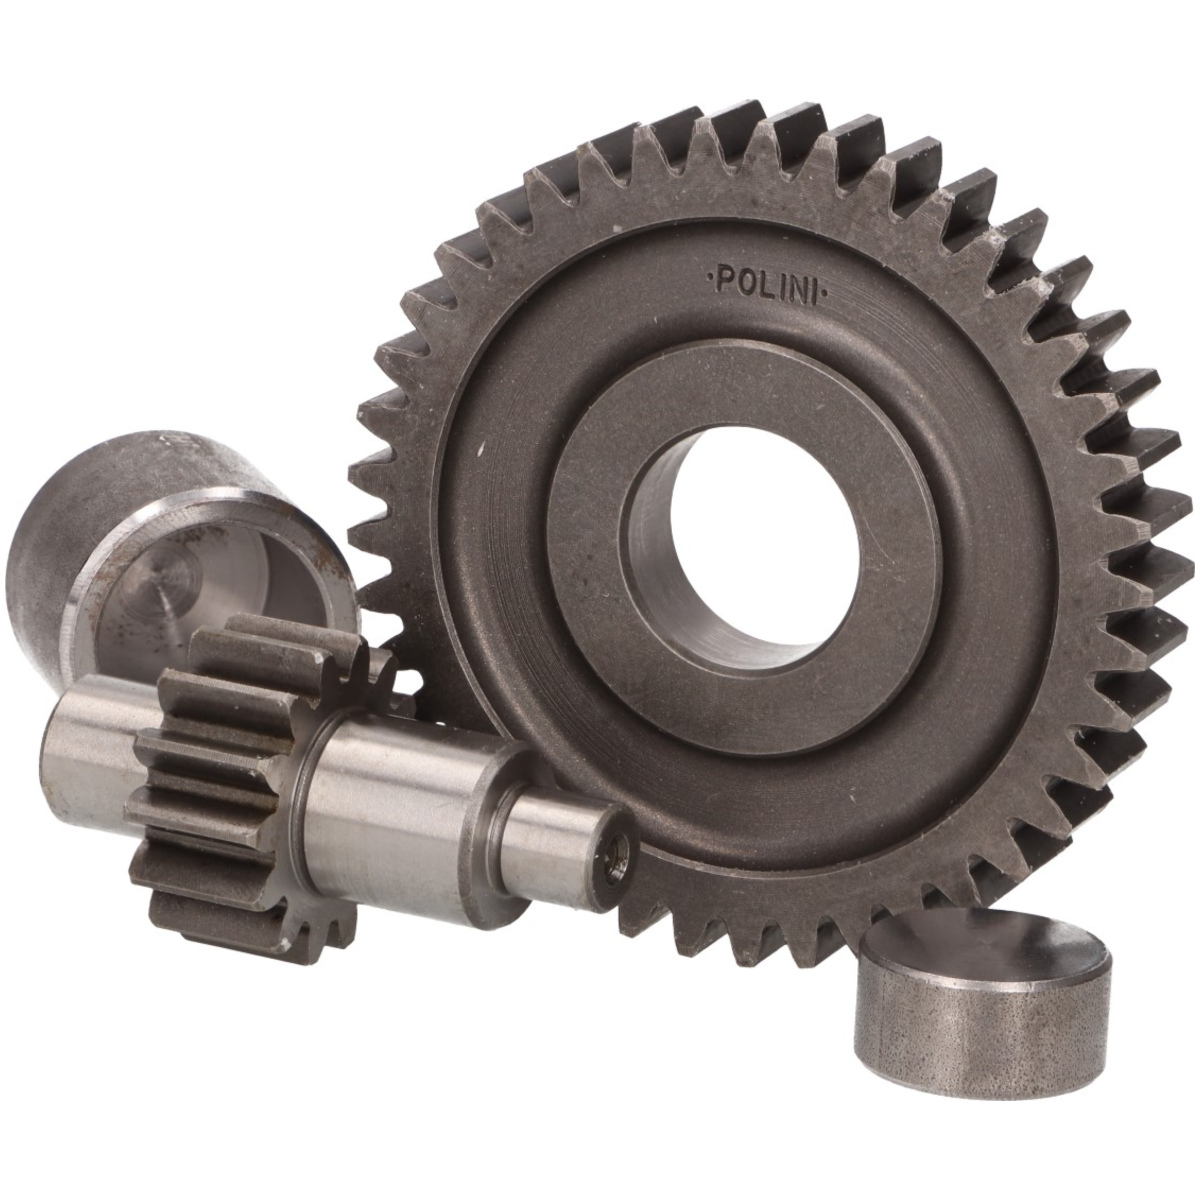 secondary transmission gear up kit Polini 14/41 for